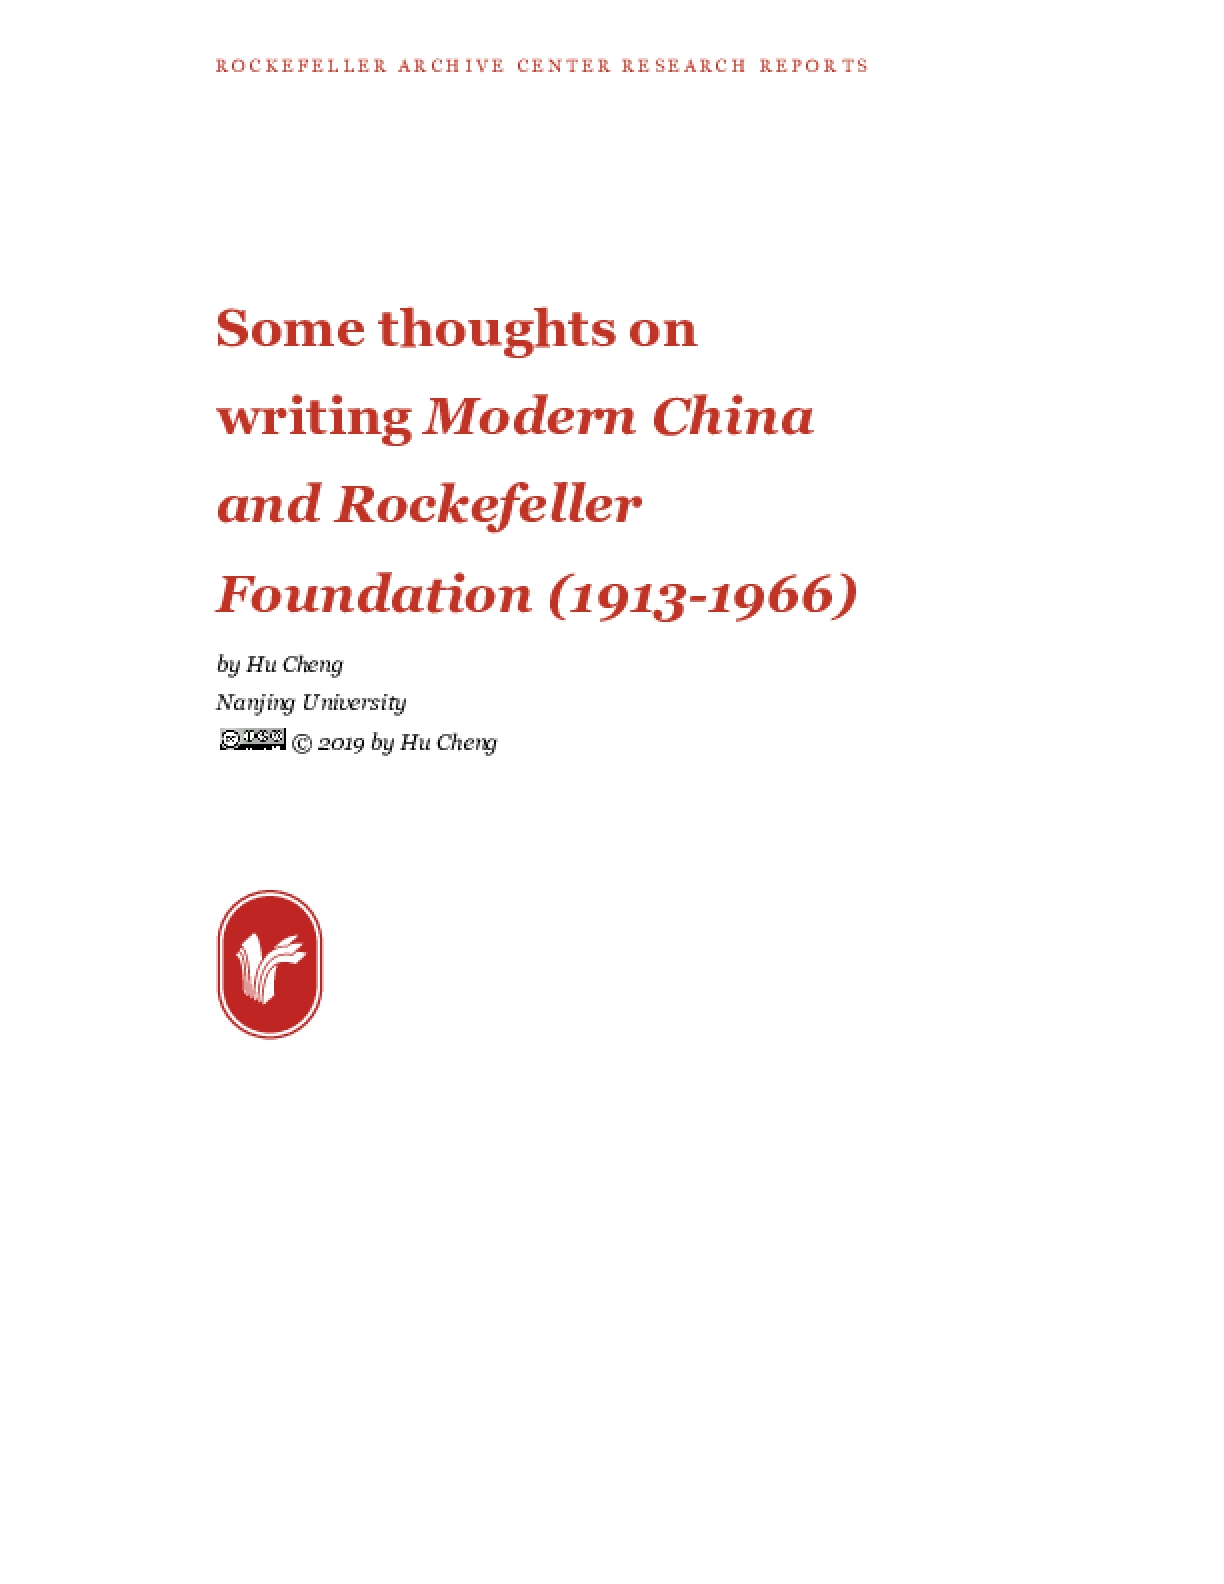 Some thoughts on writing Modern China and Rockefeller Foundation (1913-1966)